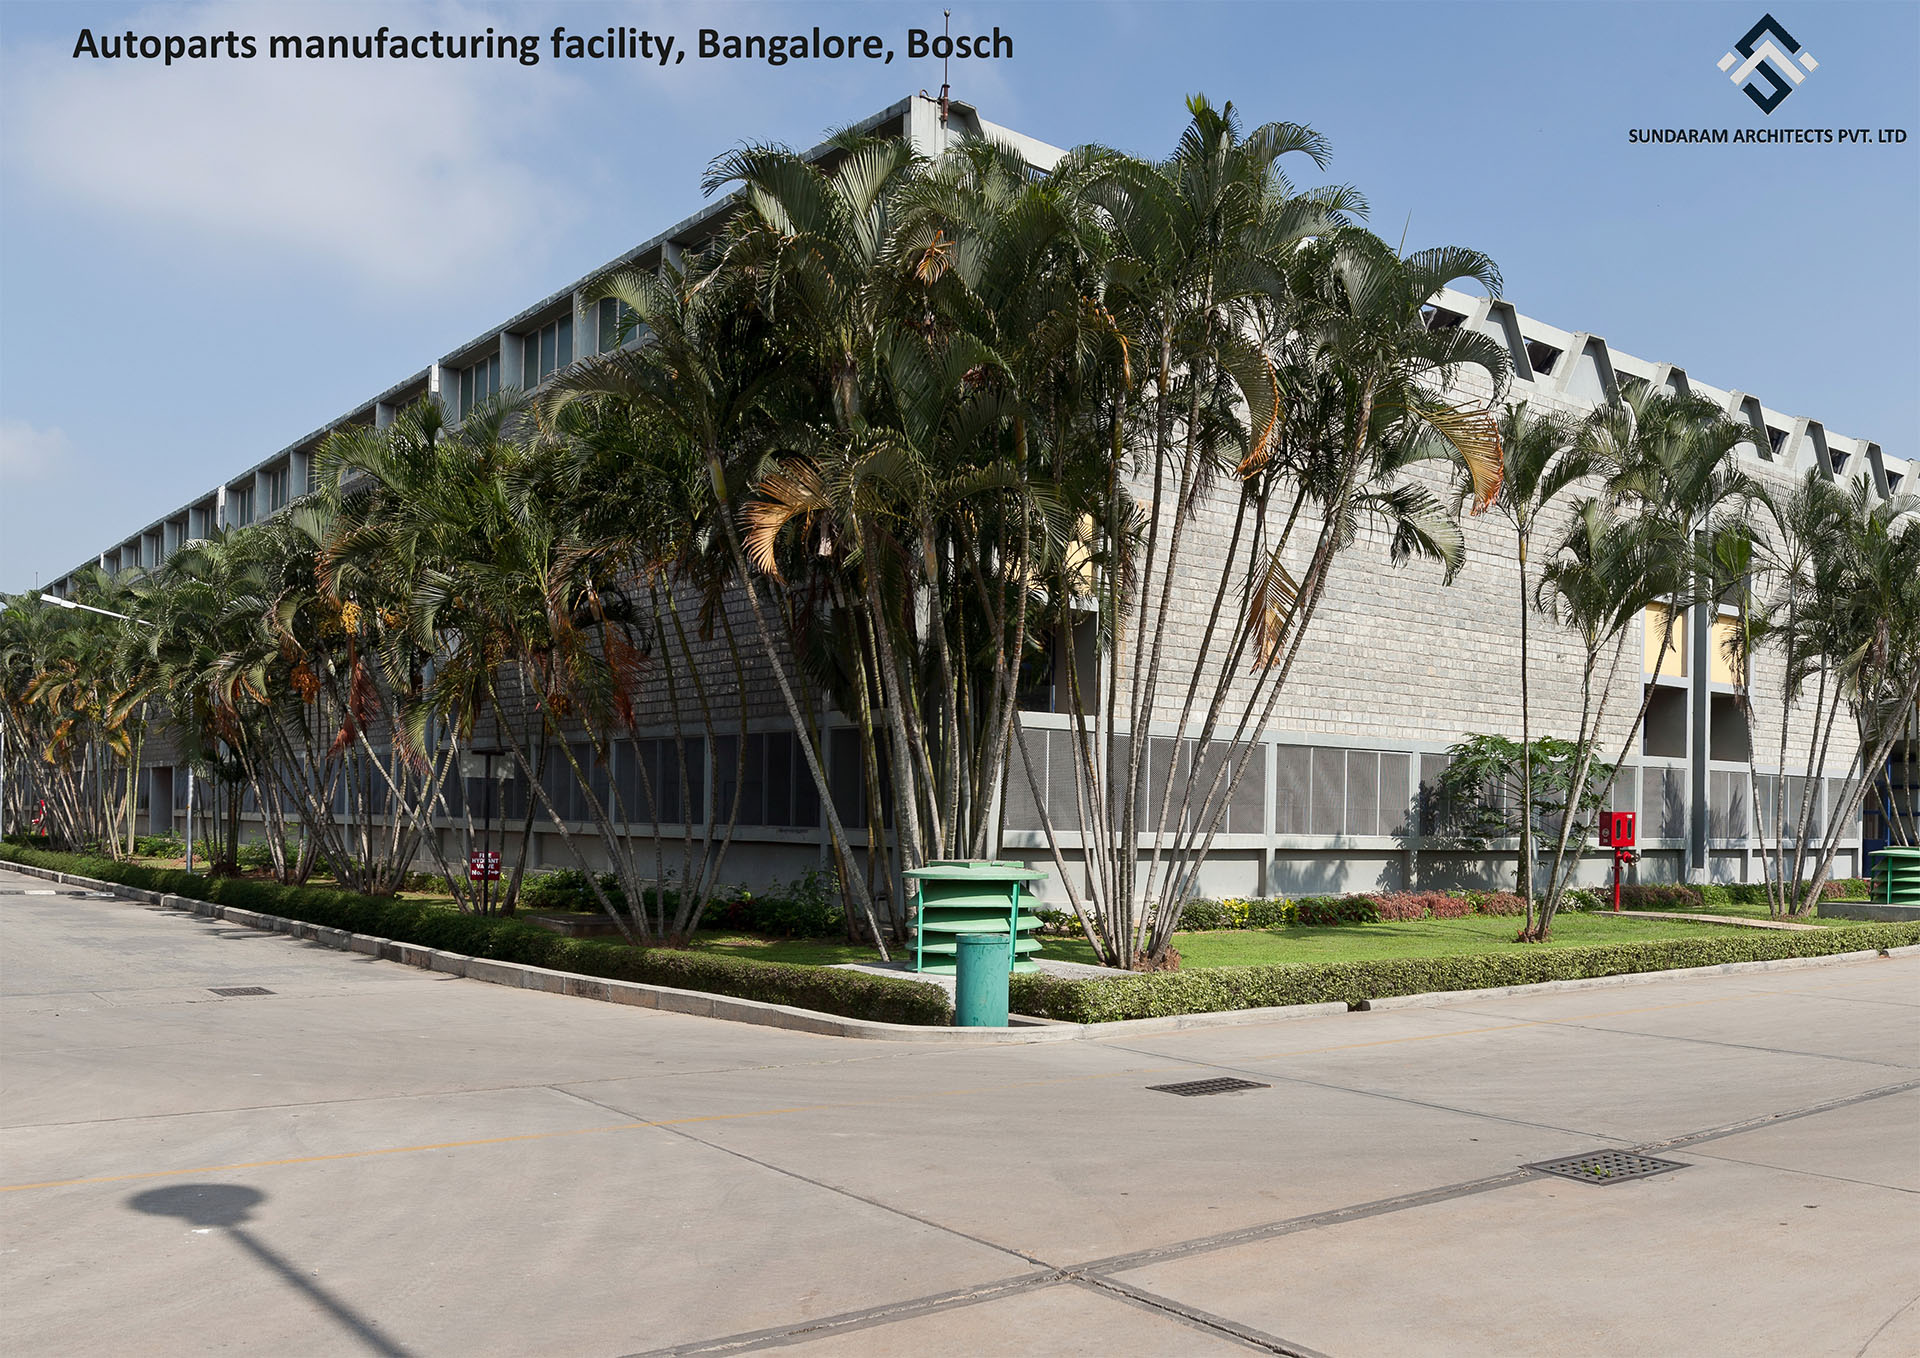 Sundaram Architects designed Autoparts Manufacturing Facility, Bangalore, Bosch